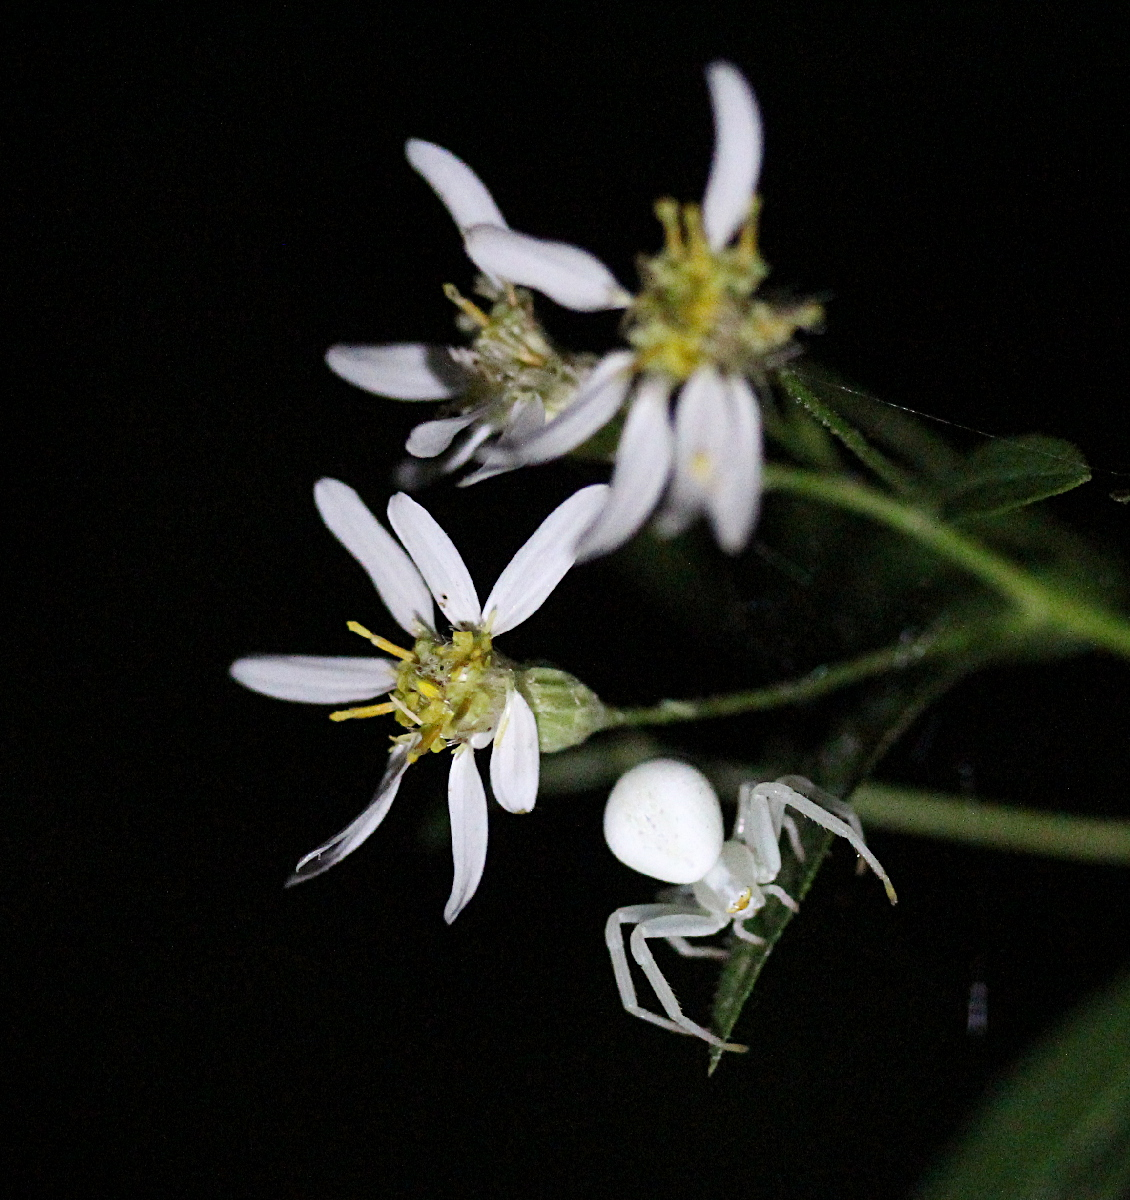 White spider on white aster flowers, black background